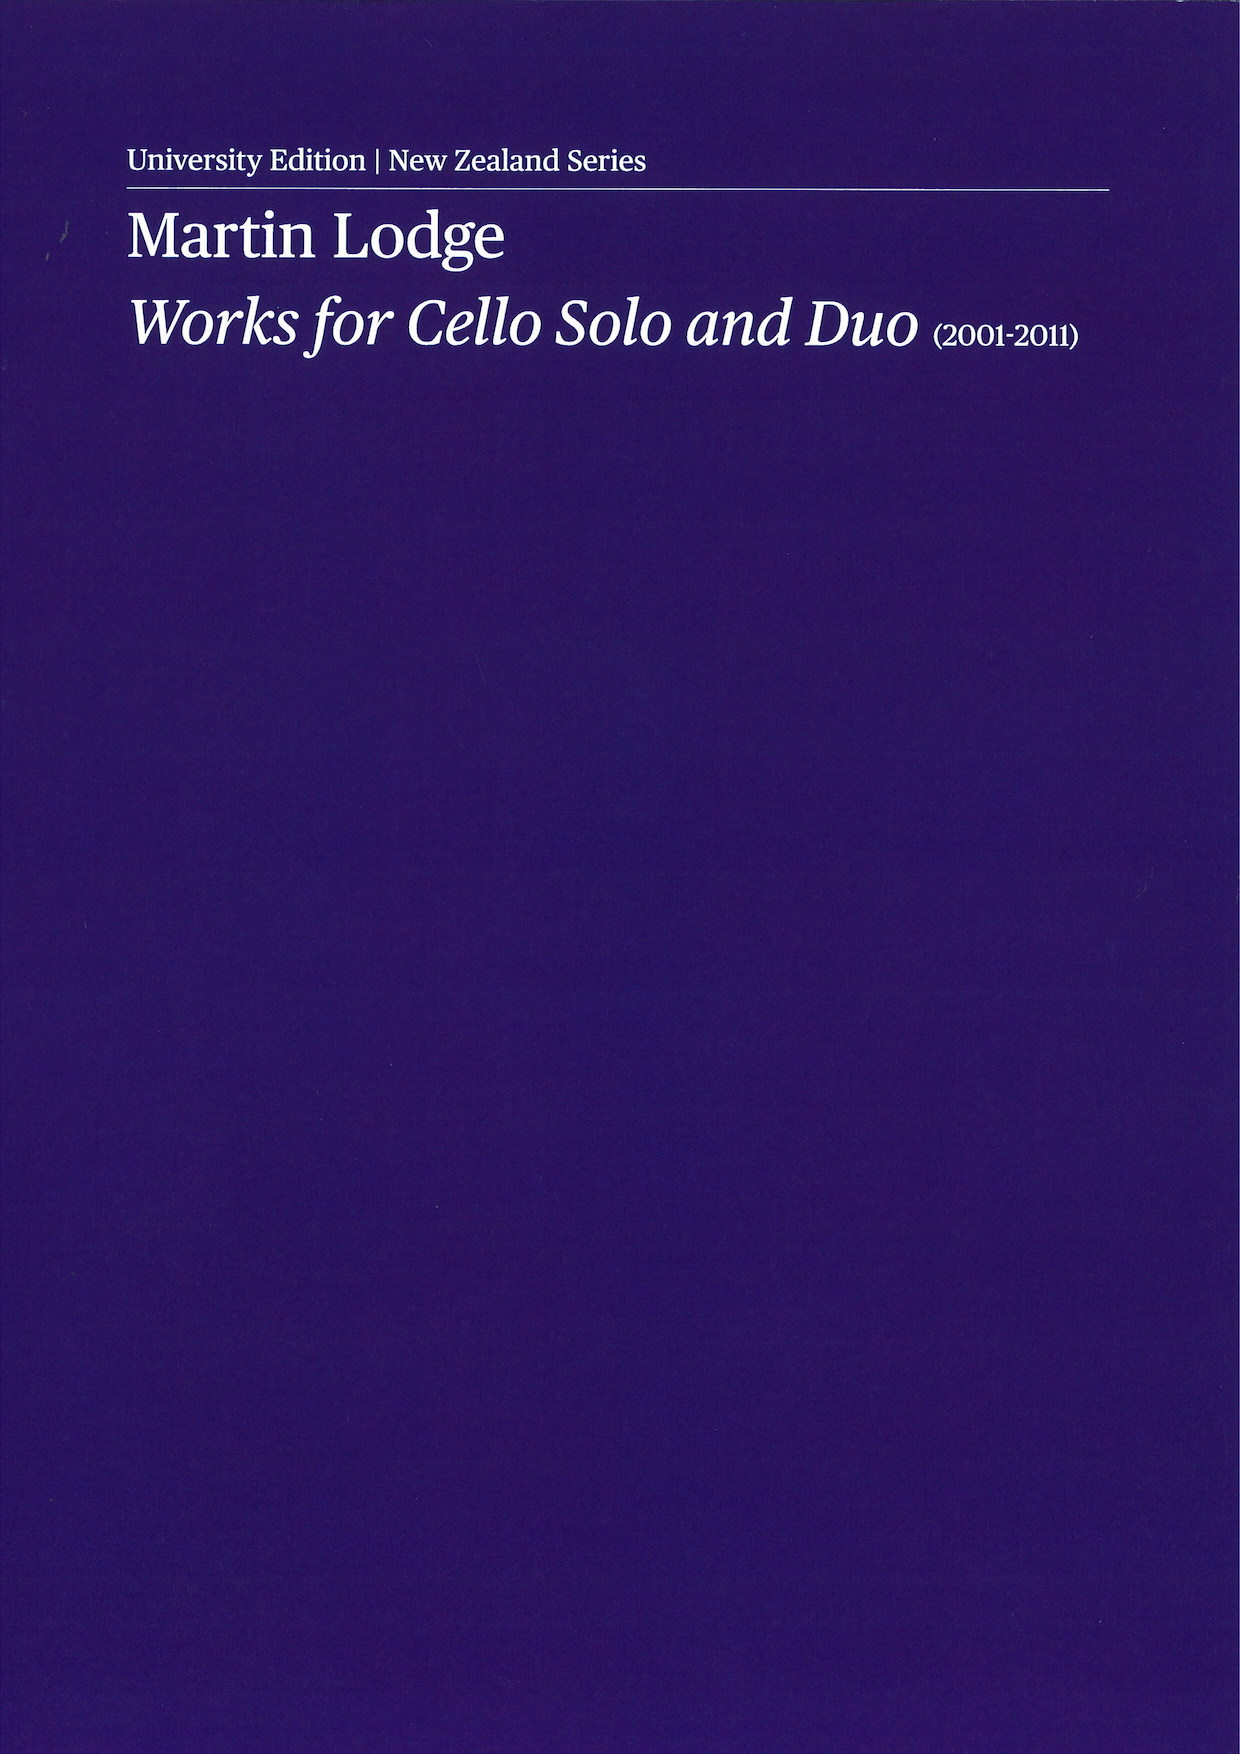 Martin Lodge: Works for Cello Solo and Duo - hardcopy score and parts